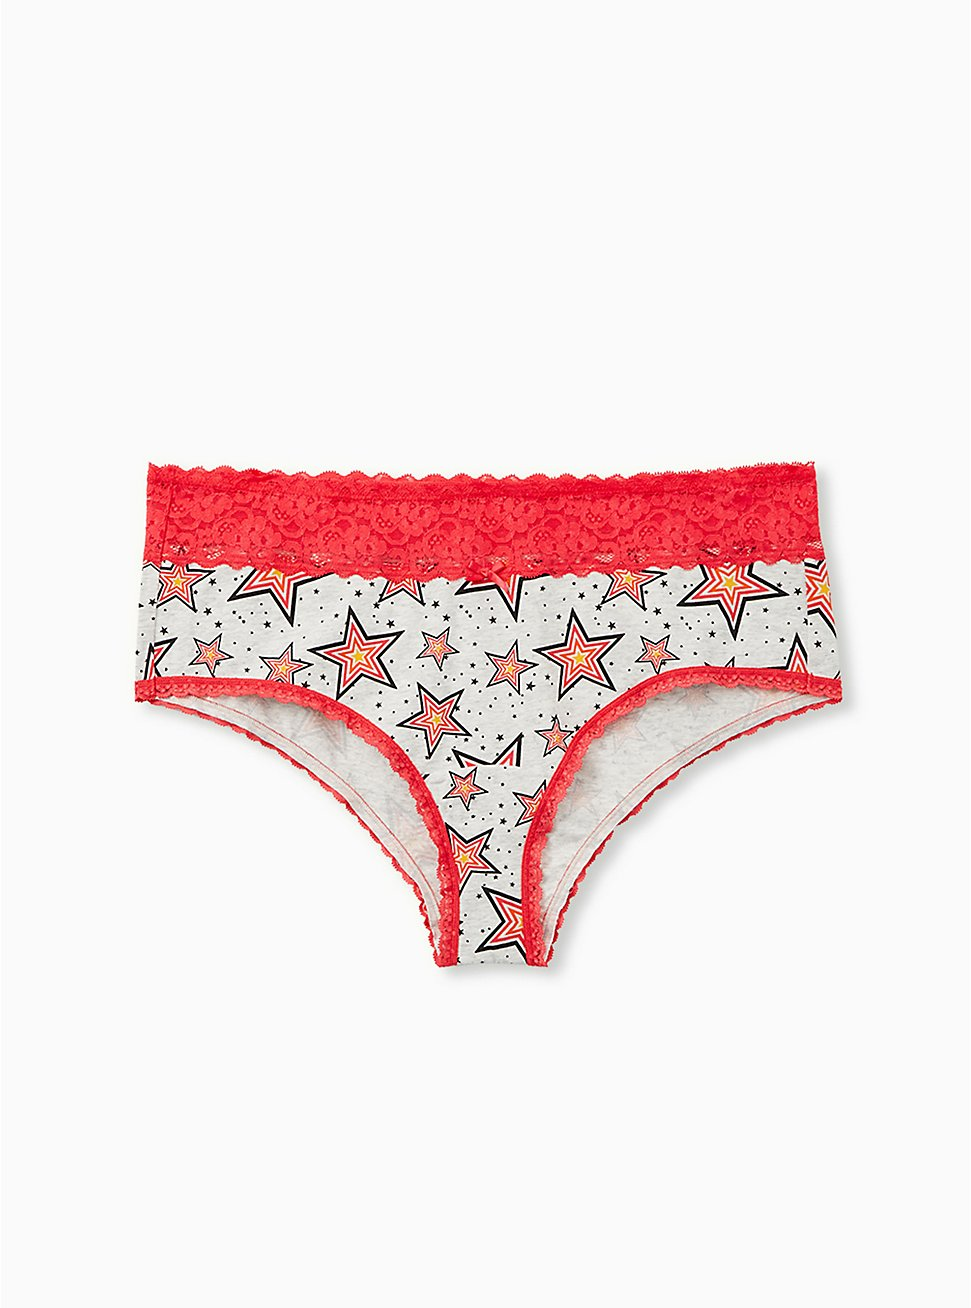 Light Grey Stars Wide Lace Cotton Cheeky Panty, , hi-res